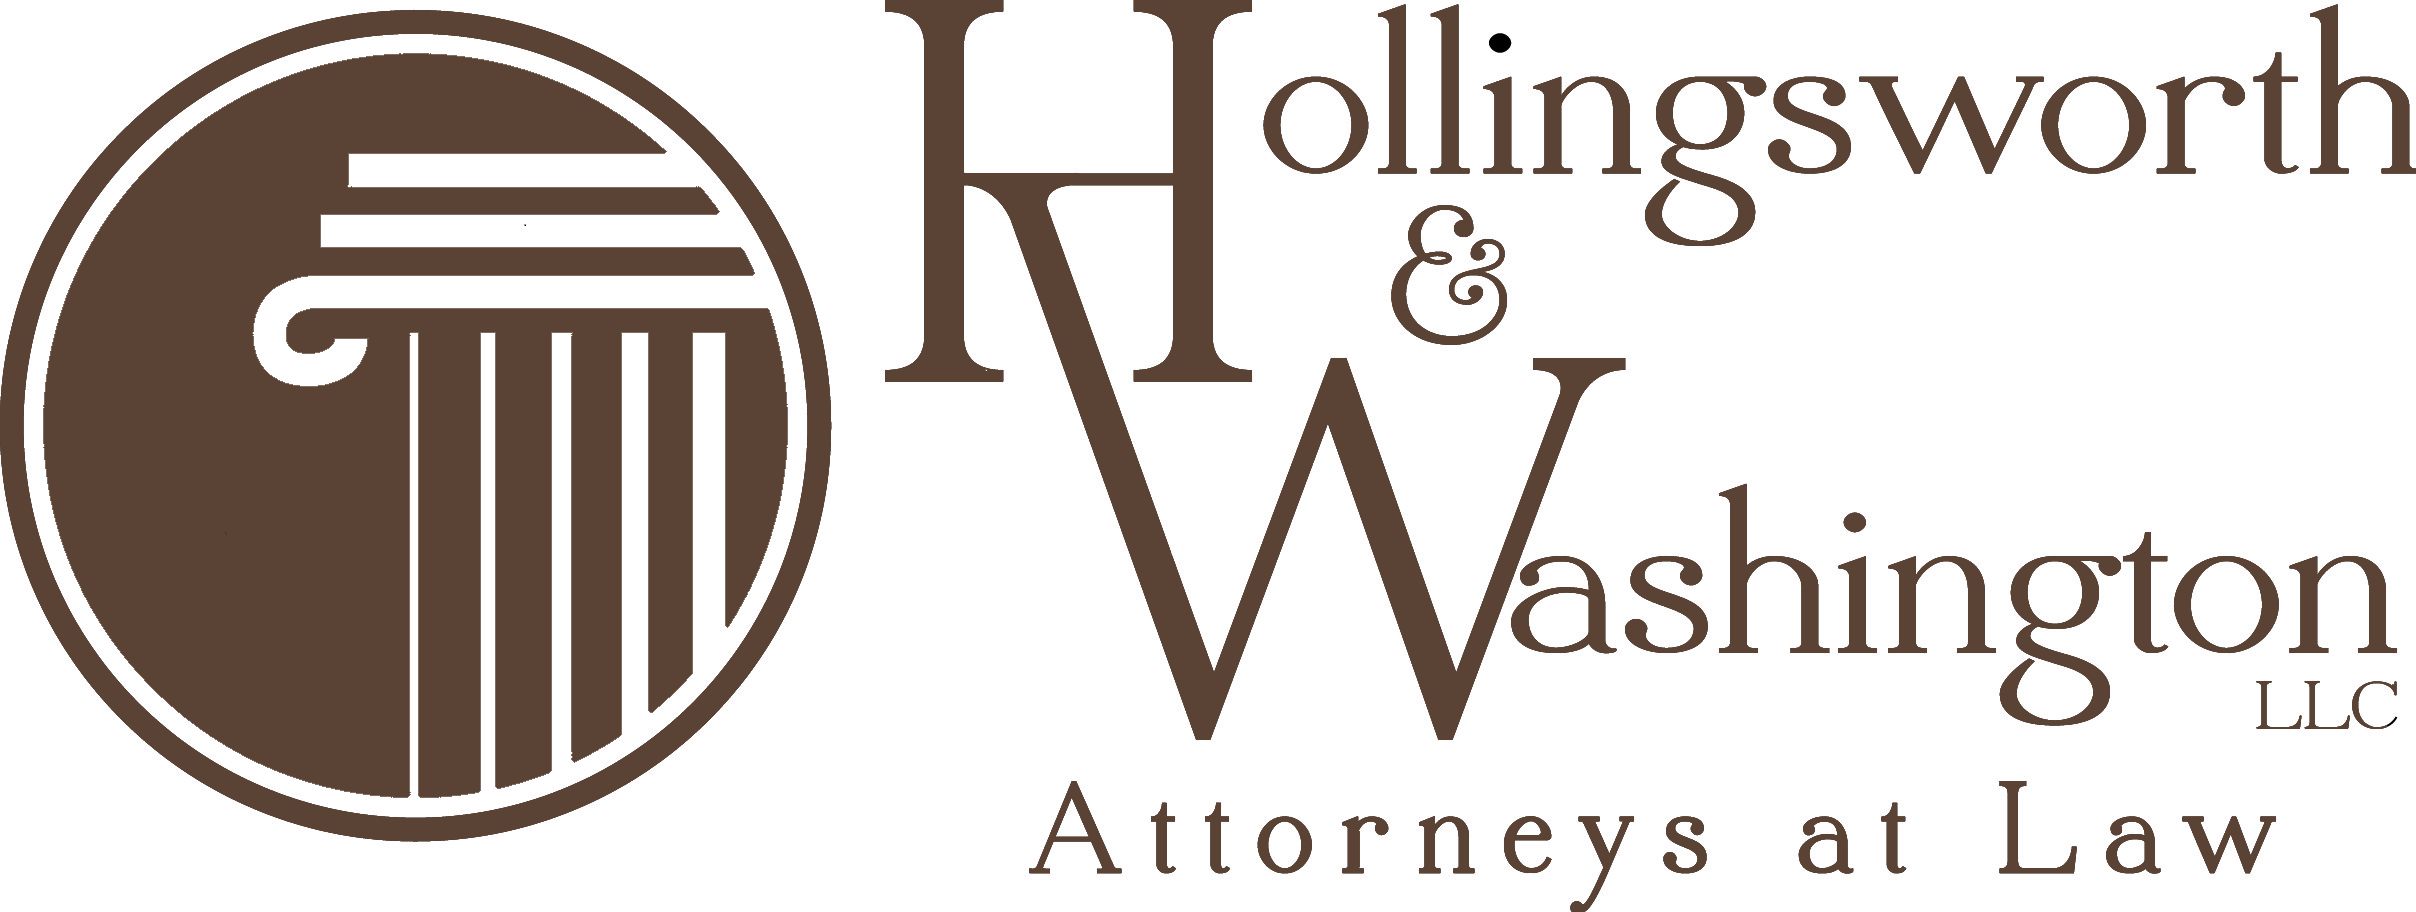 Hollingsworth & Washington Attorneys at Law Logo